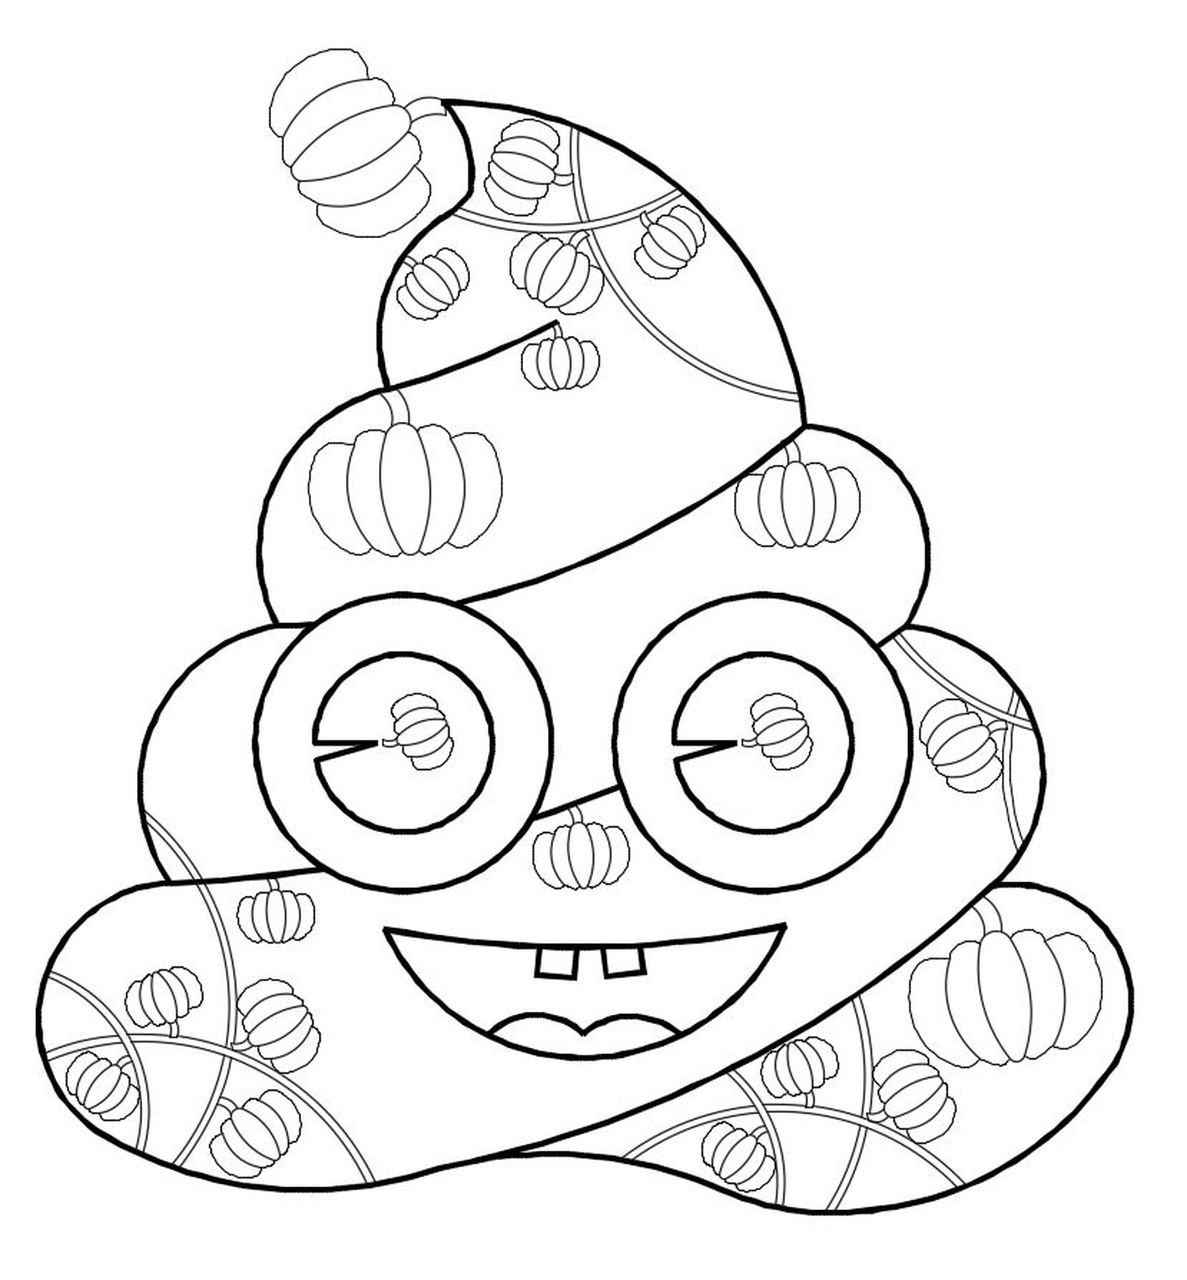 Printable Poop Emoji Coloring -Dad - Pumpkin, Pumpkin coloring pages, Poop  Emoji coloring